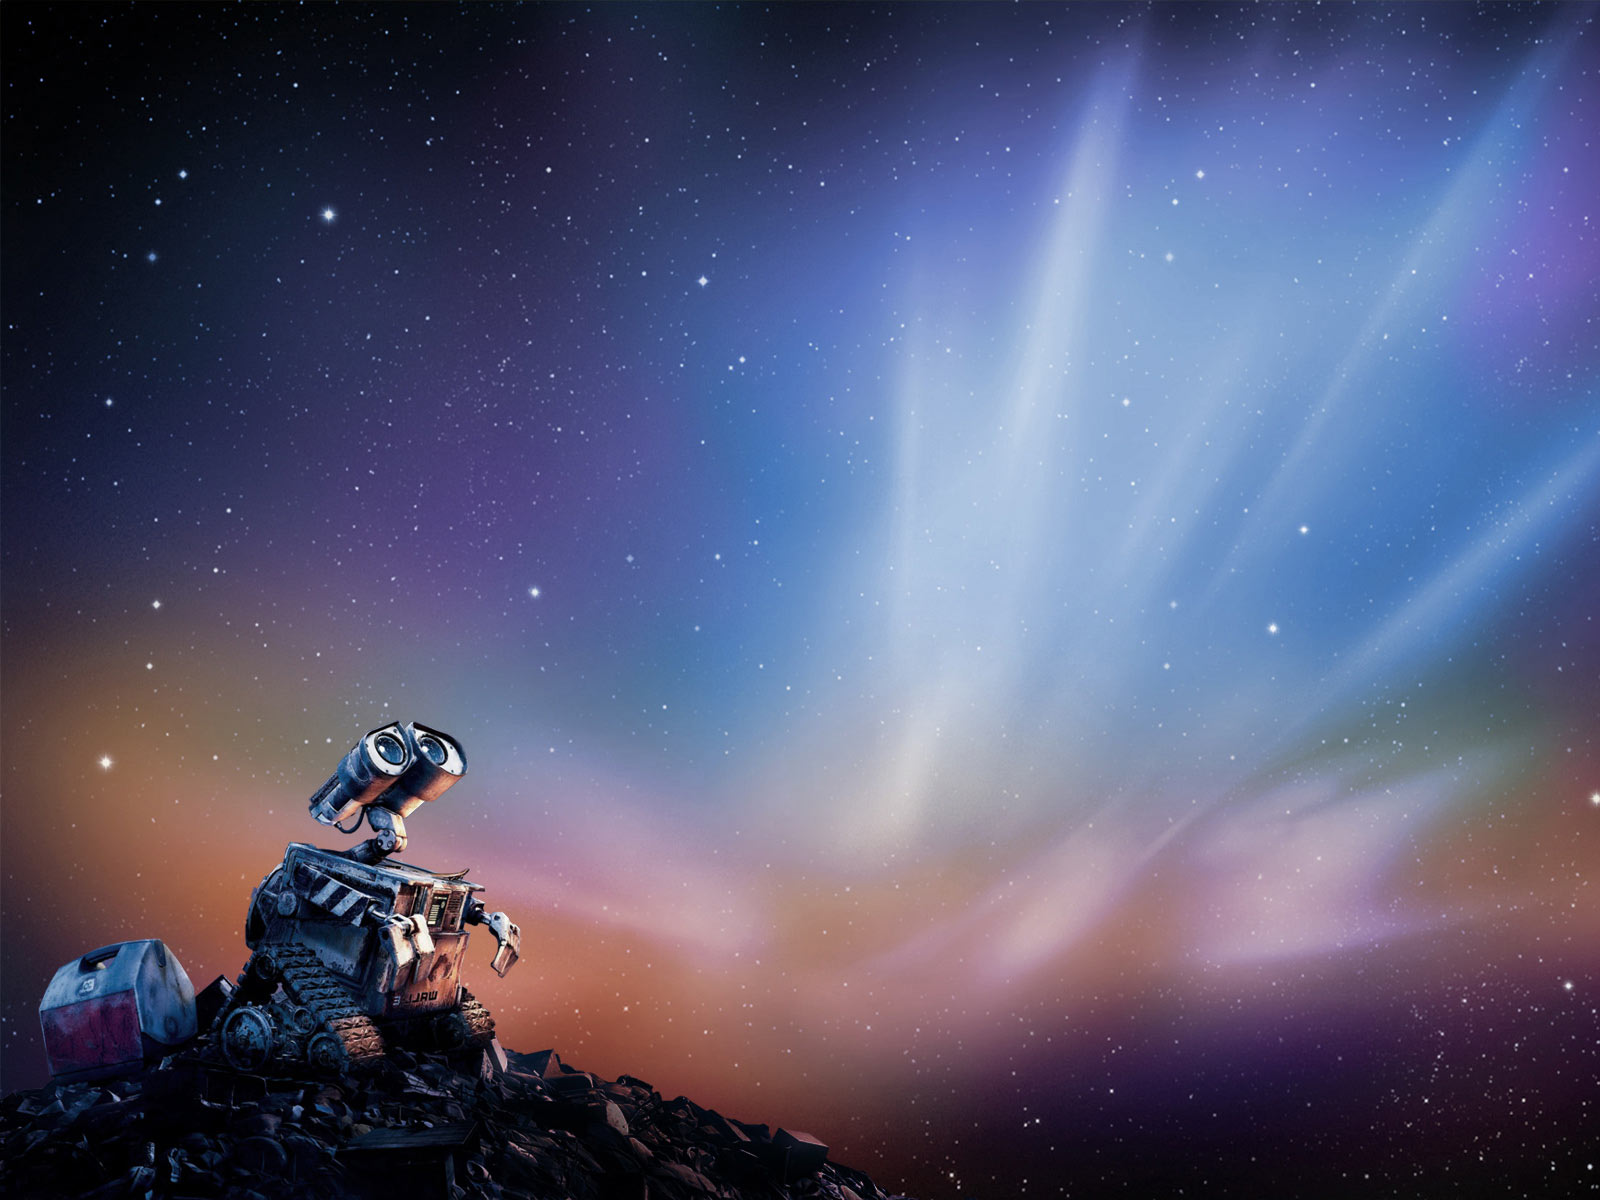 Free wall e wallpaper 30606 1600x1200 px Wallpapers for the wall